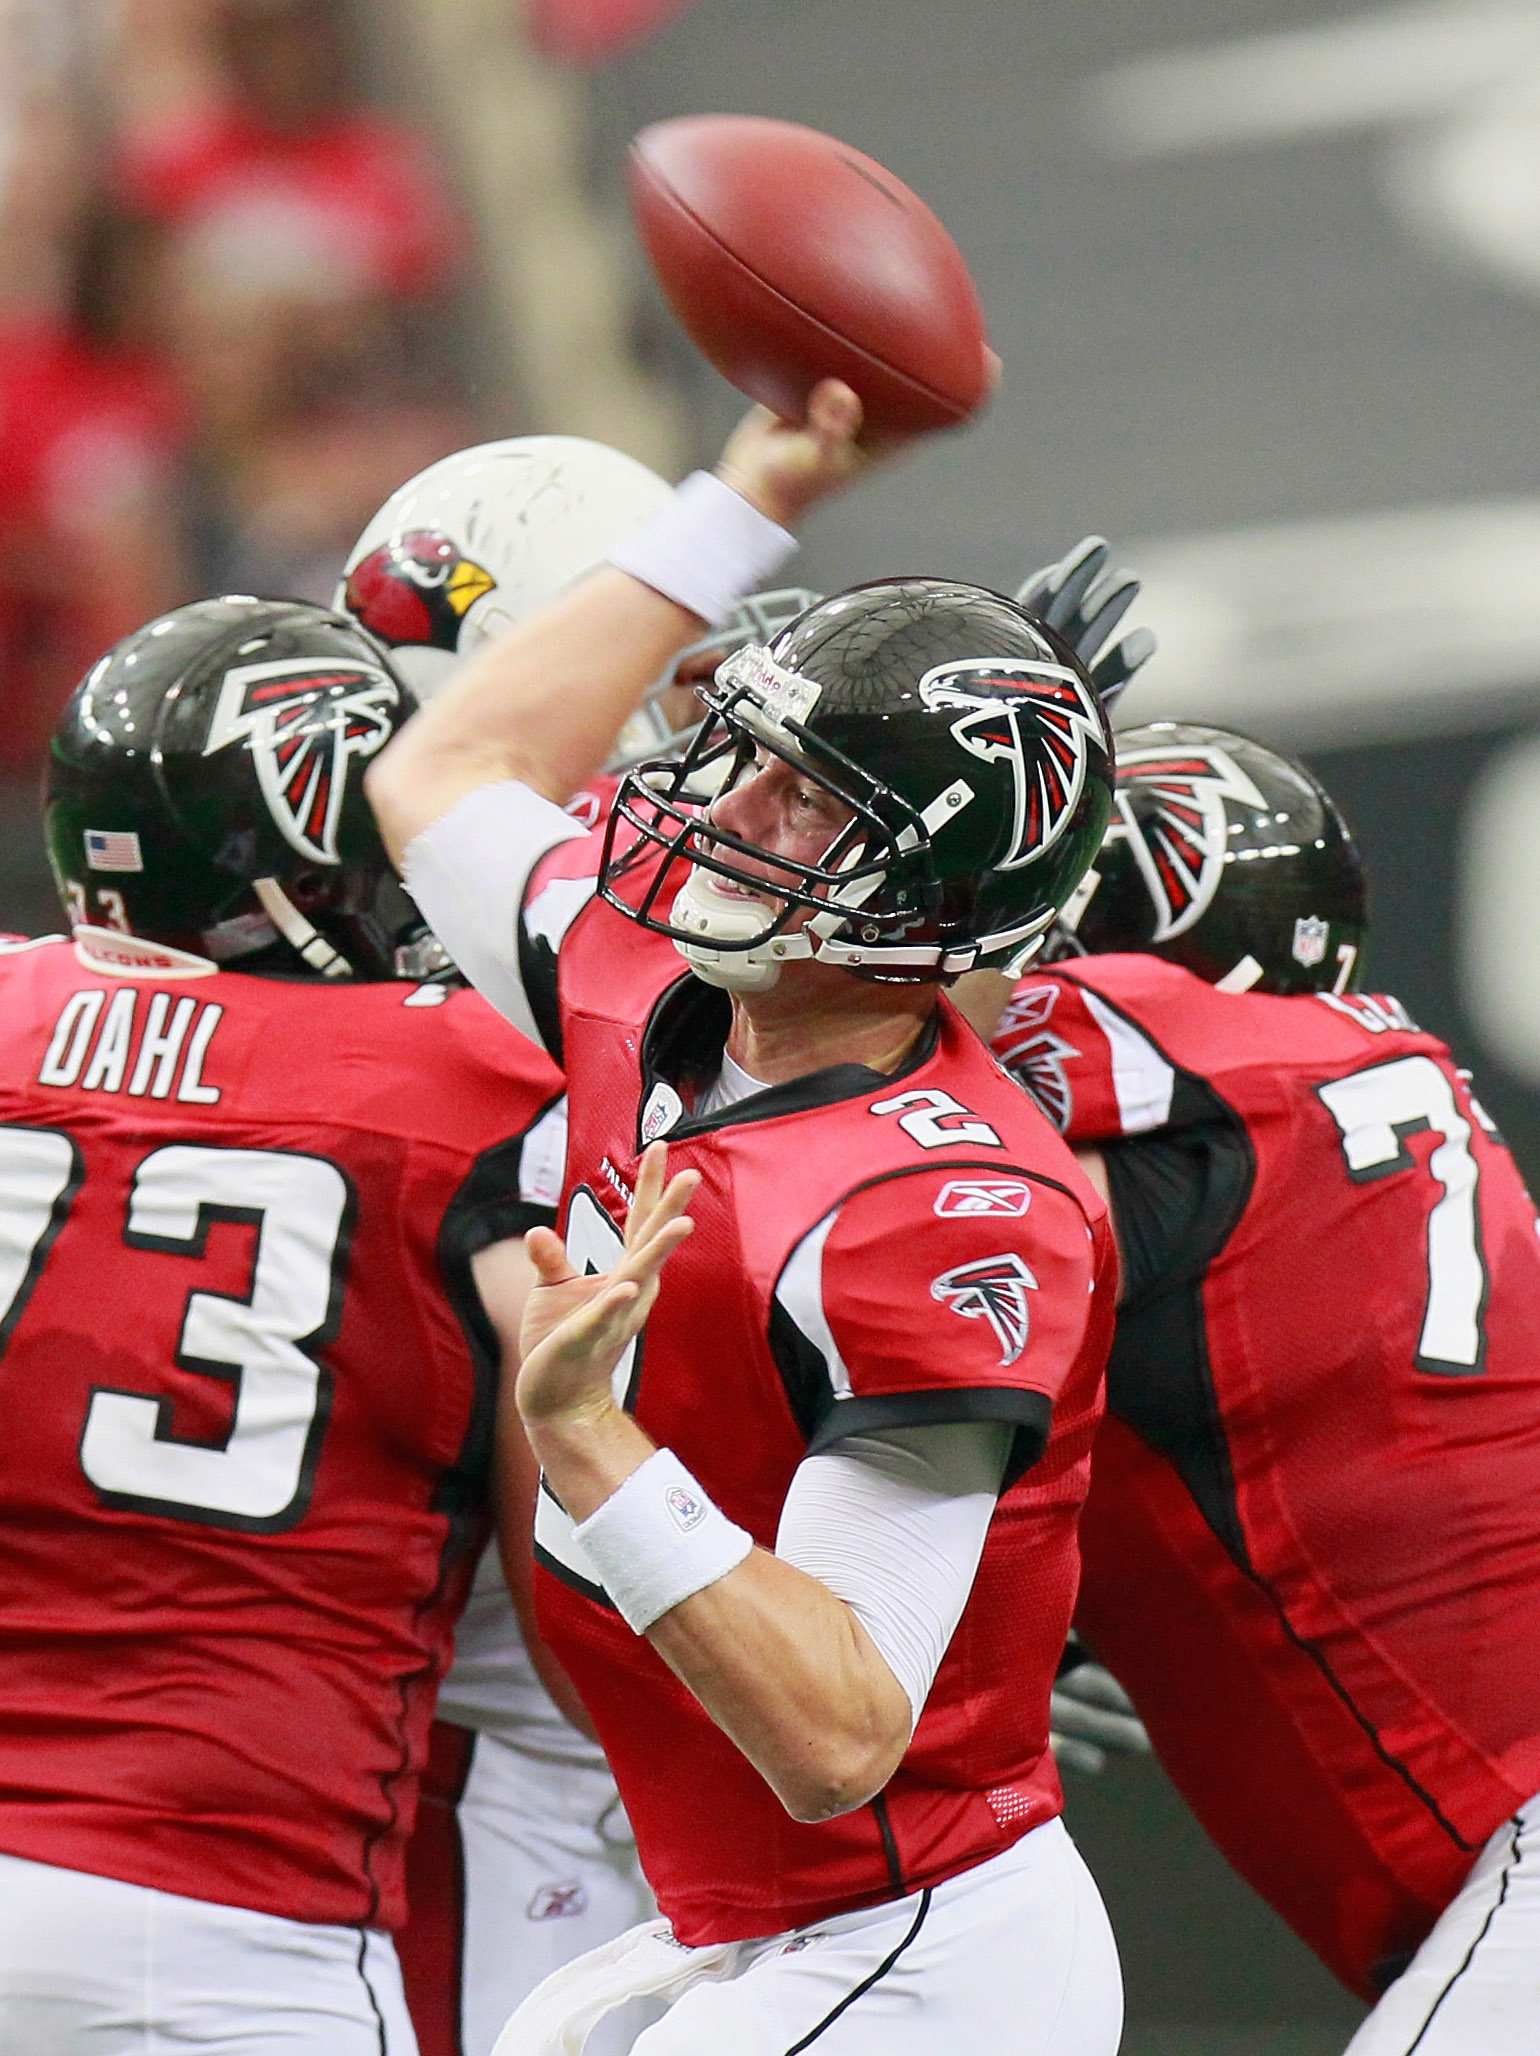 ATLANTA - SEPTEMBER 19:  Quarterback Matt Ryan #2 of the Atlanta Falcons looks to pass against the Arizona Cardinals at Georgia Dome on September 19, 2010 in Atlanta, Georgia.  (Photo by Kevin C. Cox/Getty Images)